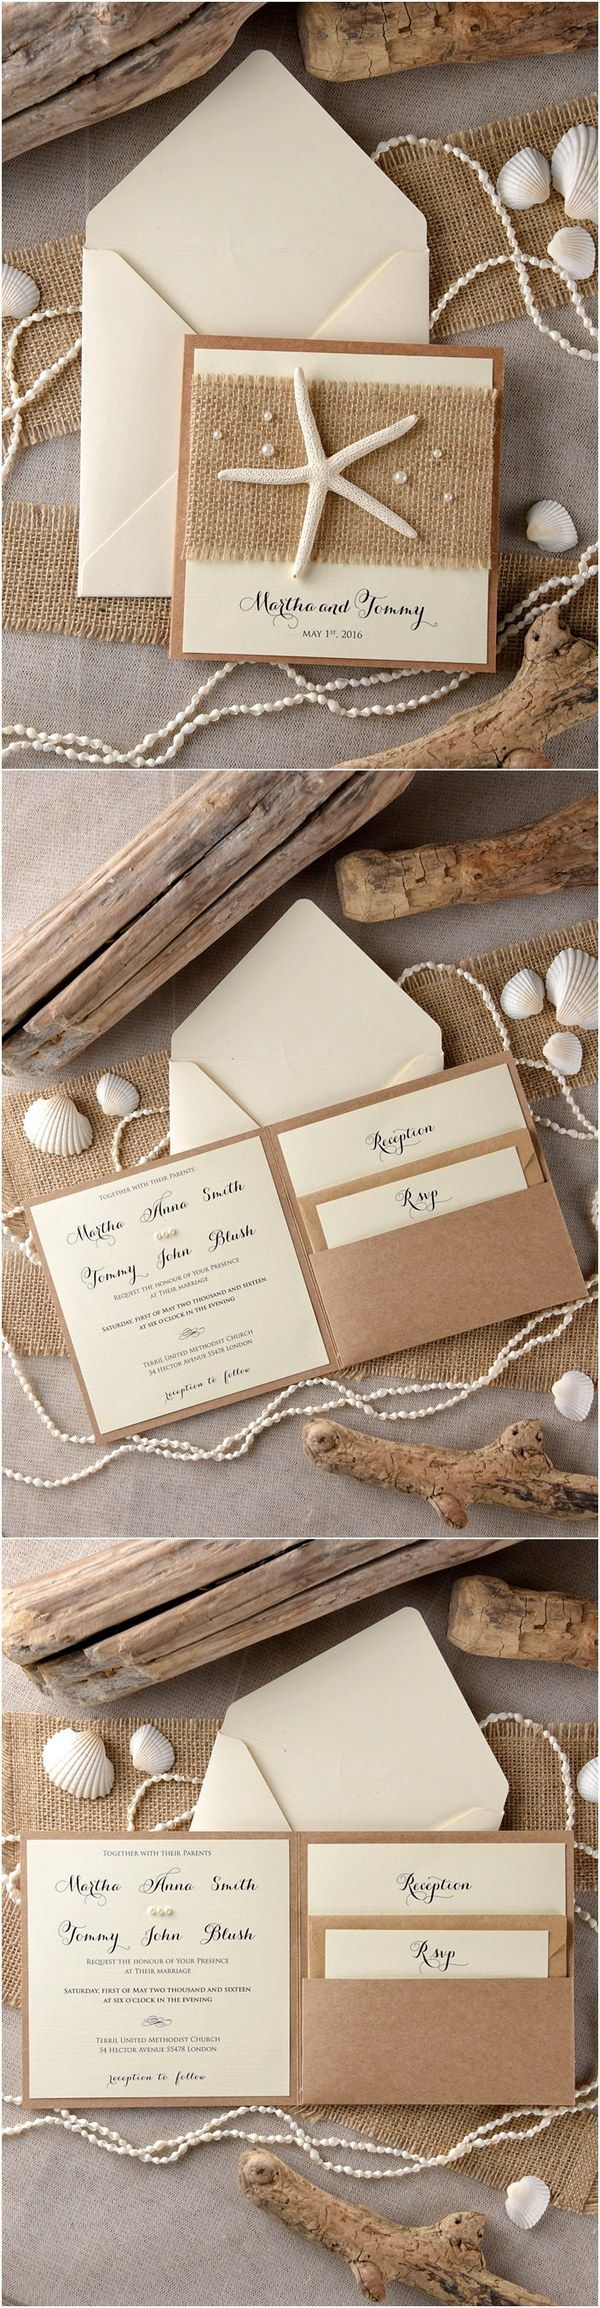 Country Rustic Wedding Invitations Awesome Country Rustic Wedding Invitations Design Stmexhibit